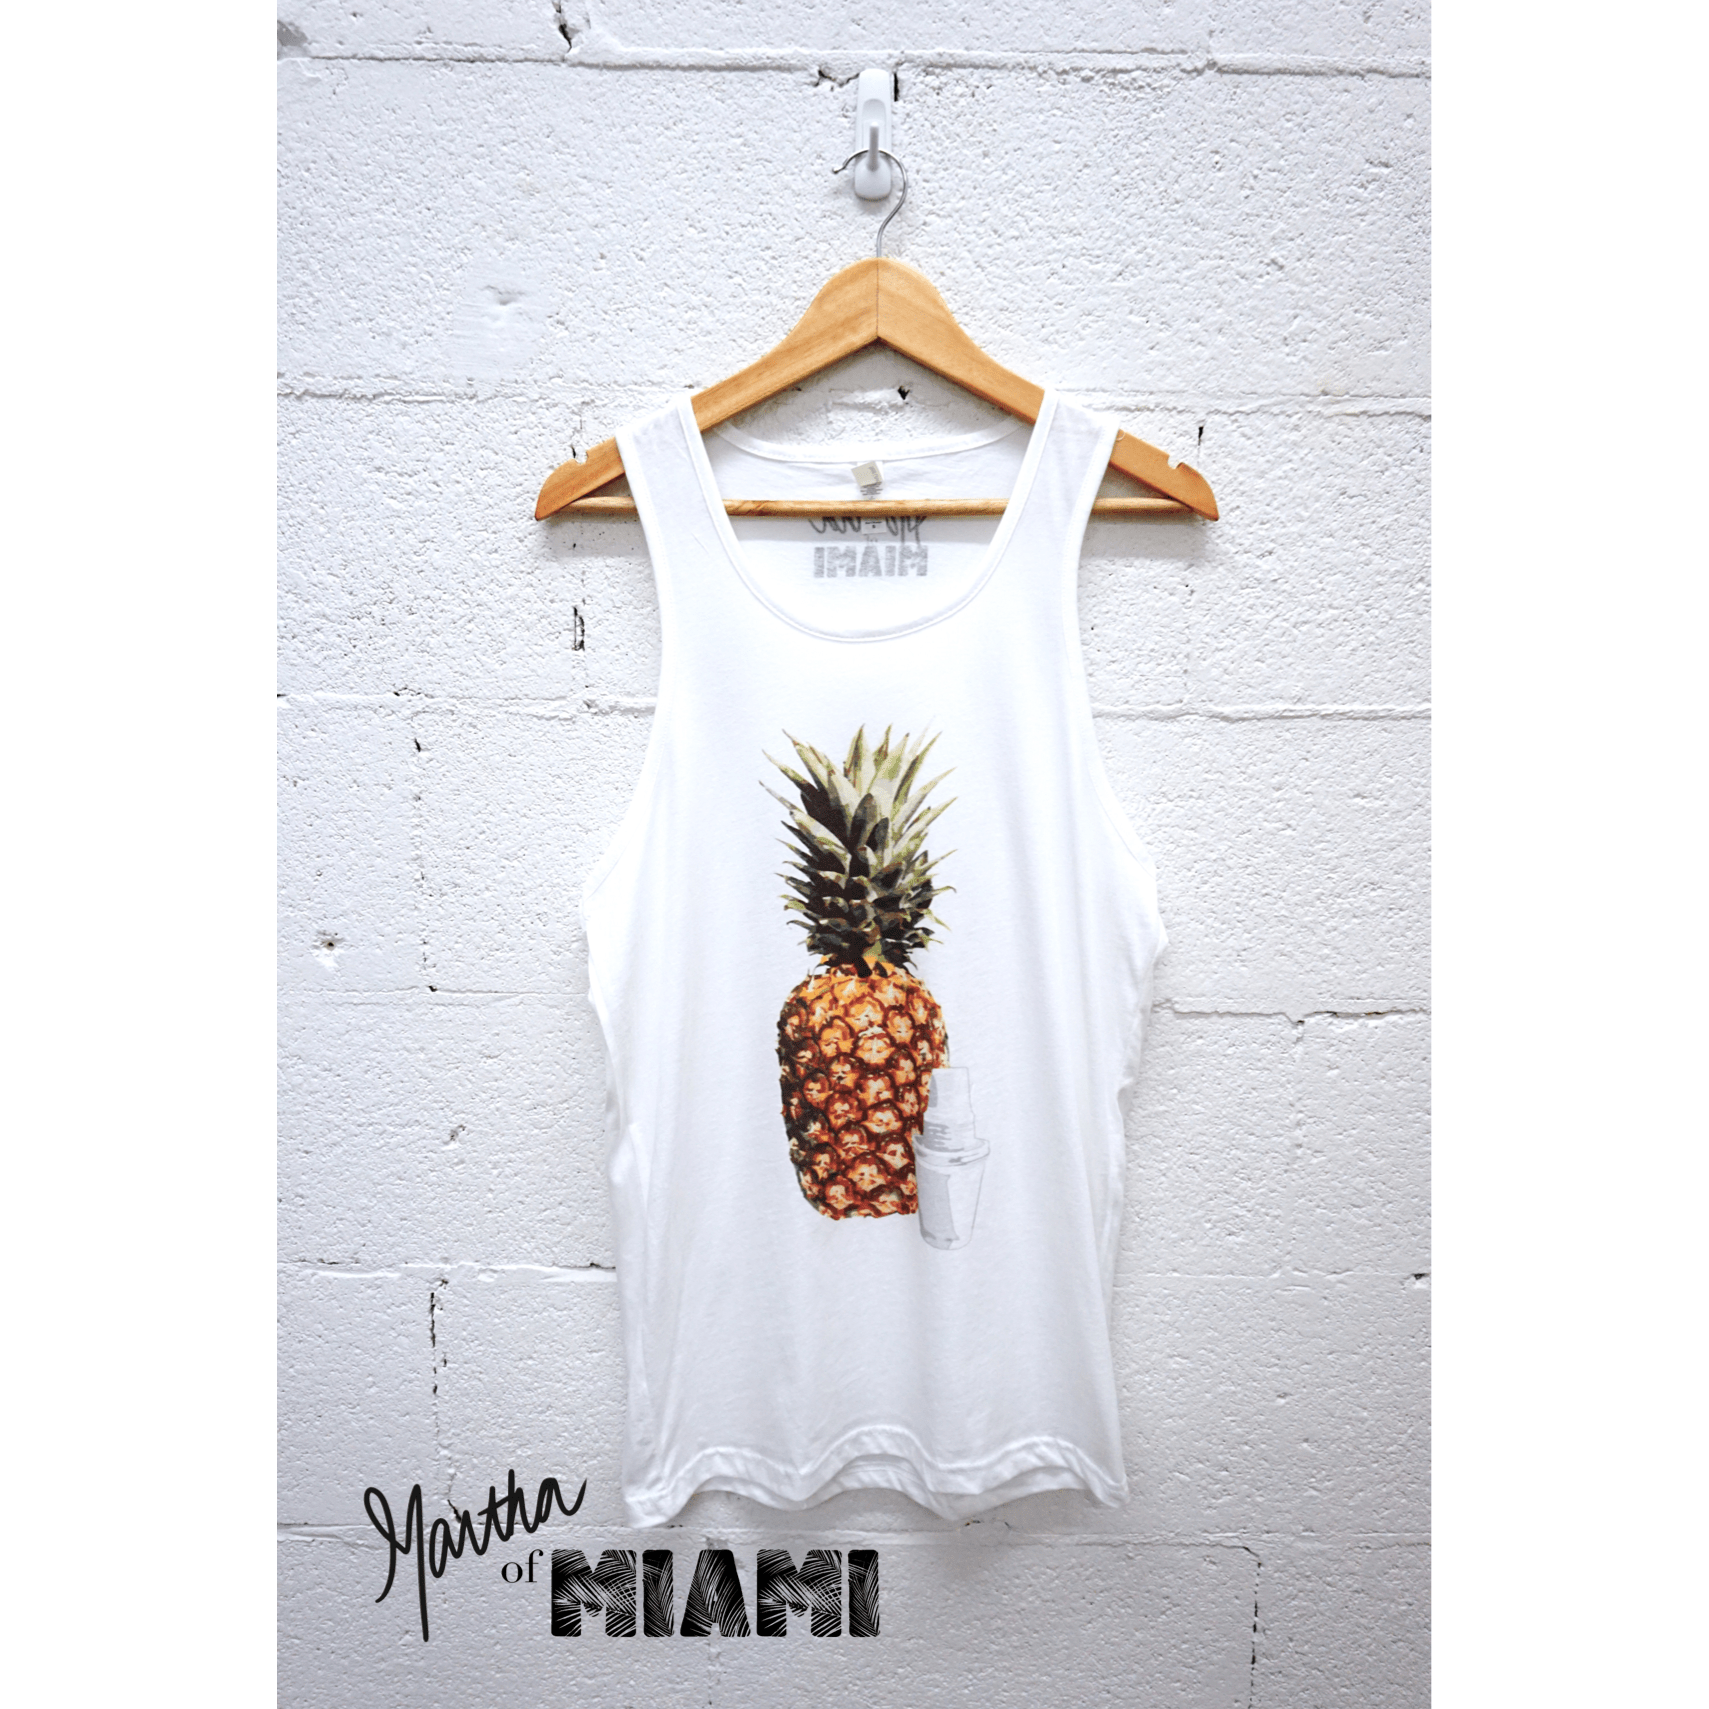 The-Official-Piña-Colada-Tank-Top-Men.jpg